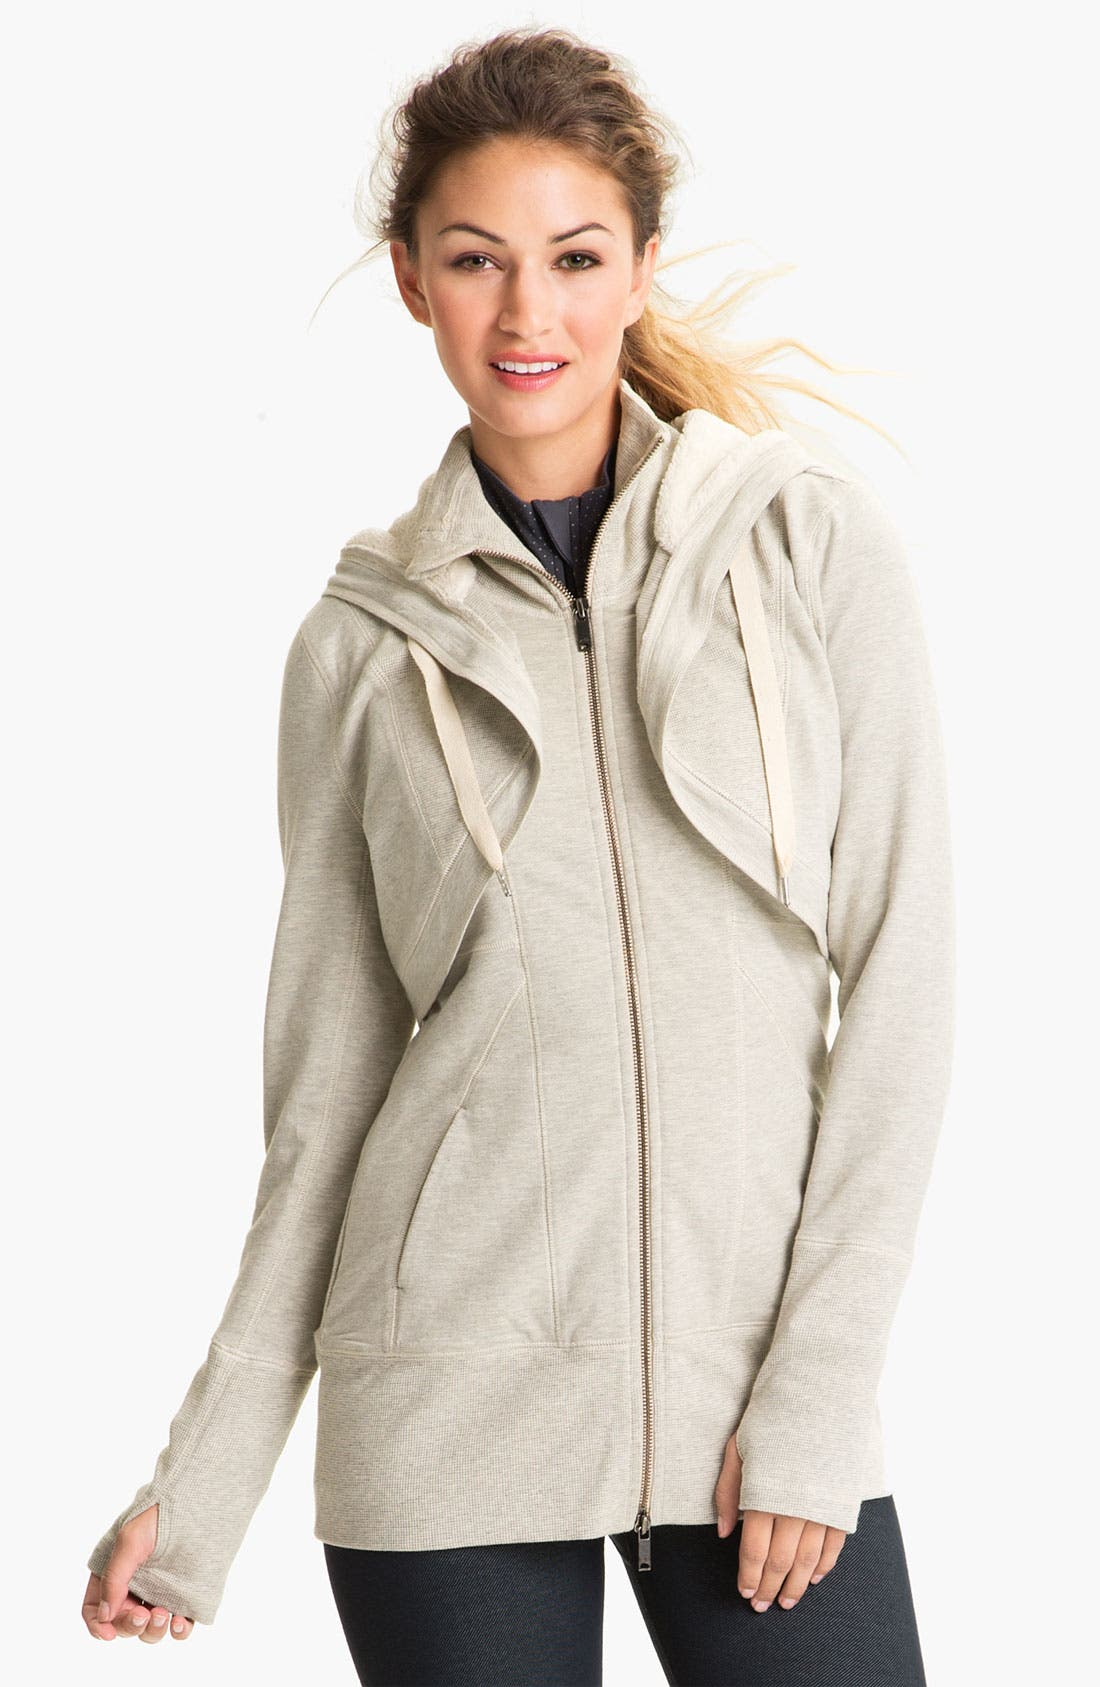 Main Image - Zella 'Chalet' 3-in-1 Jacket